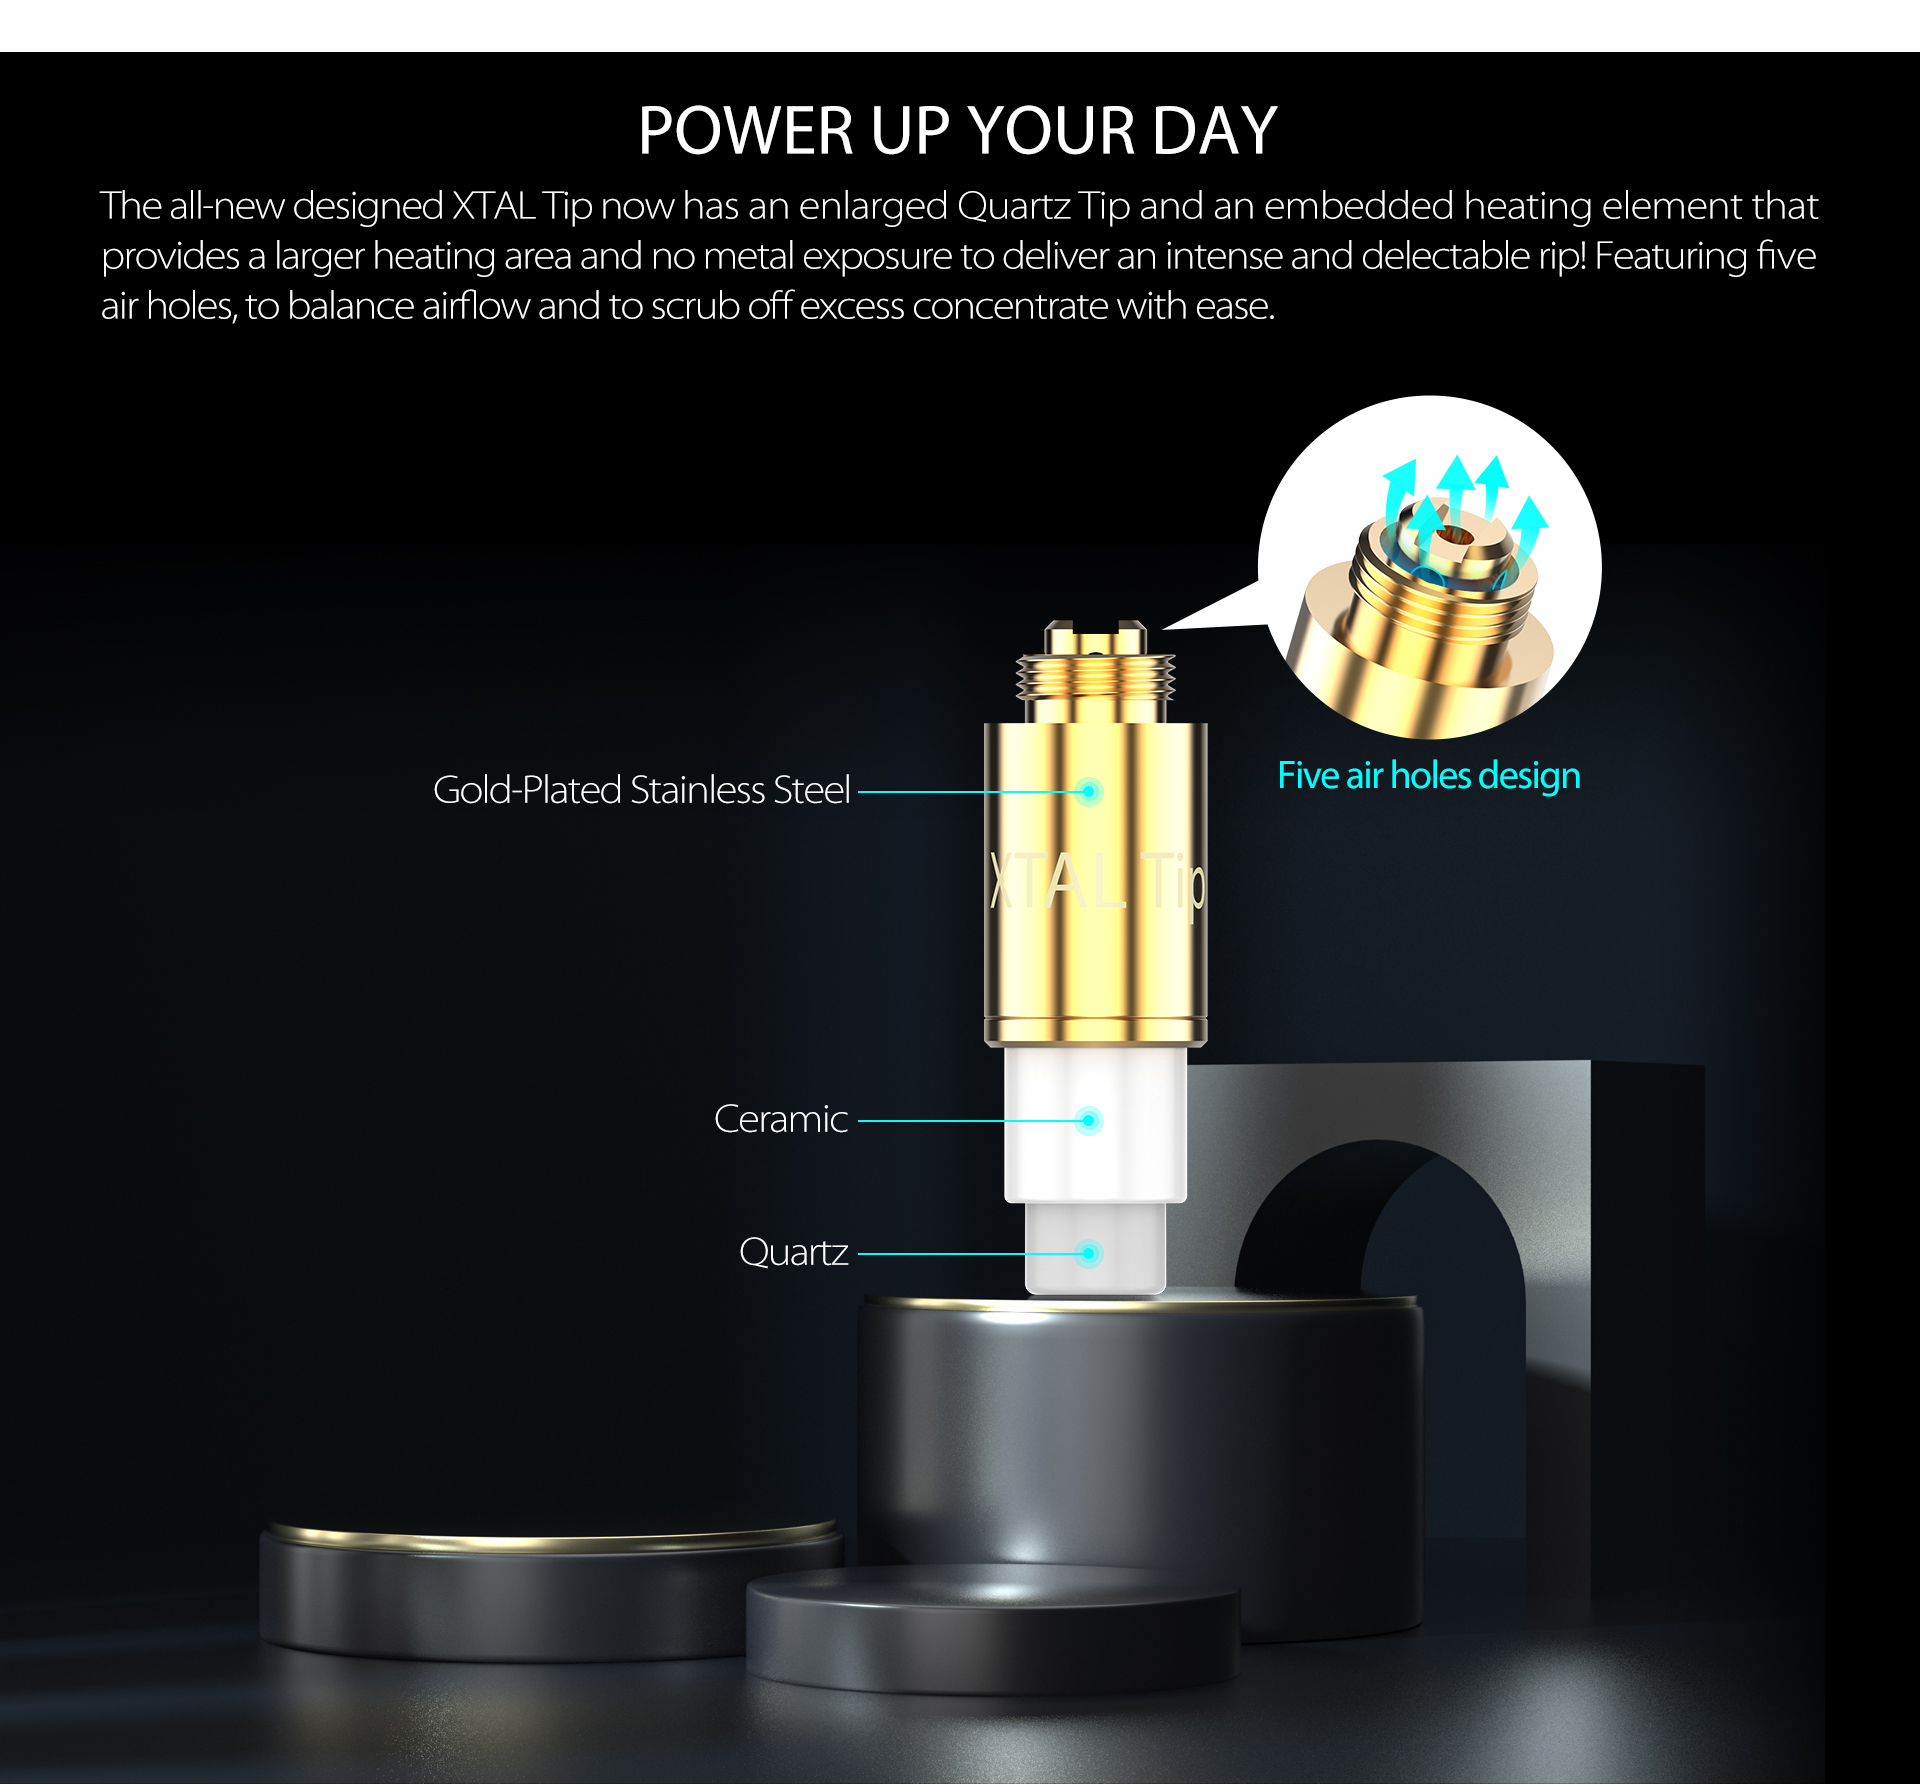 Yocan Loki Portable Vaporizer Pen come with all-new designed XTAL Tip.